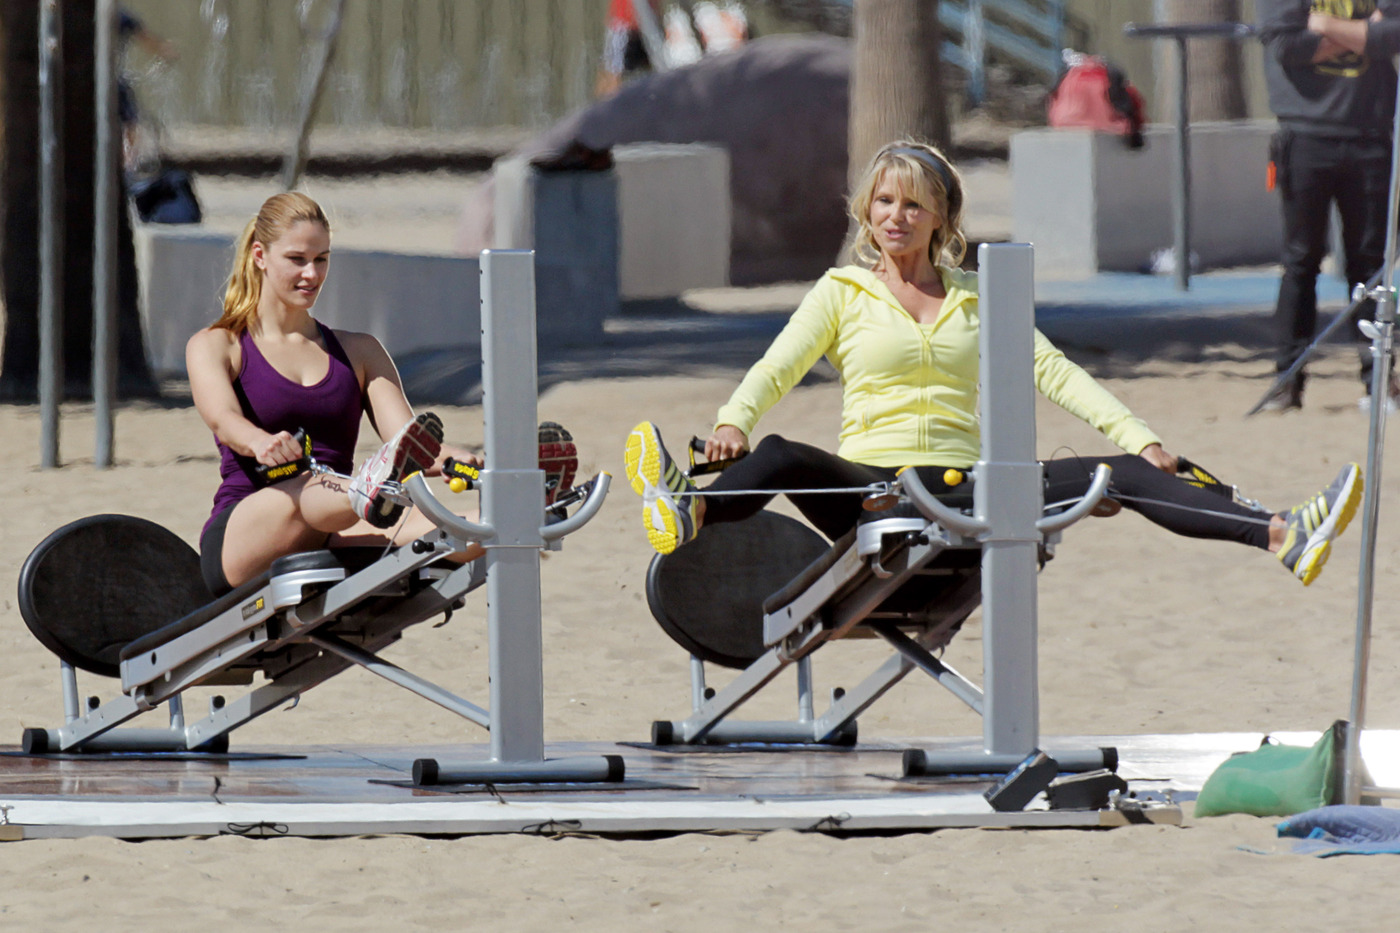 Total gym infomercial taping christie brinkley photo